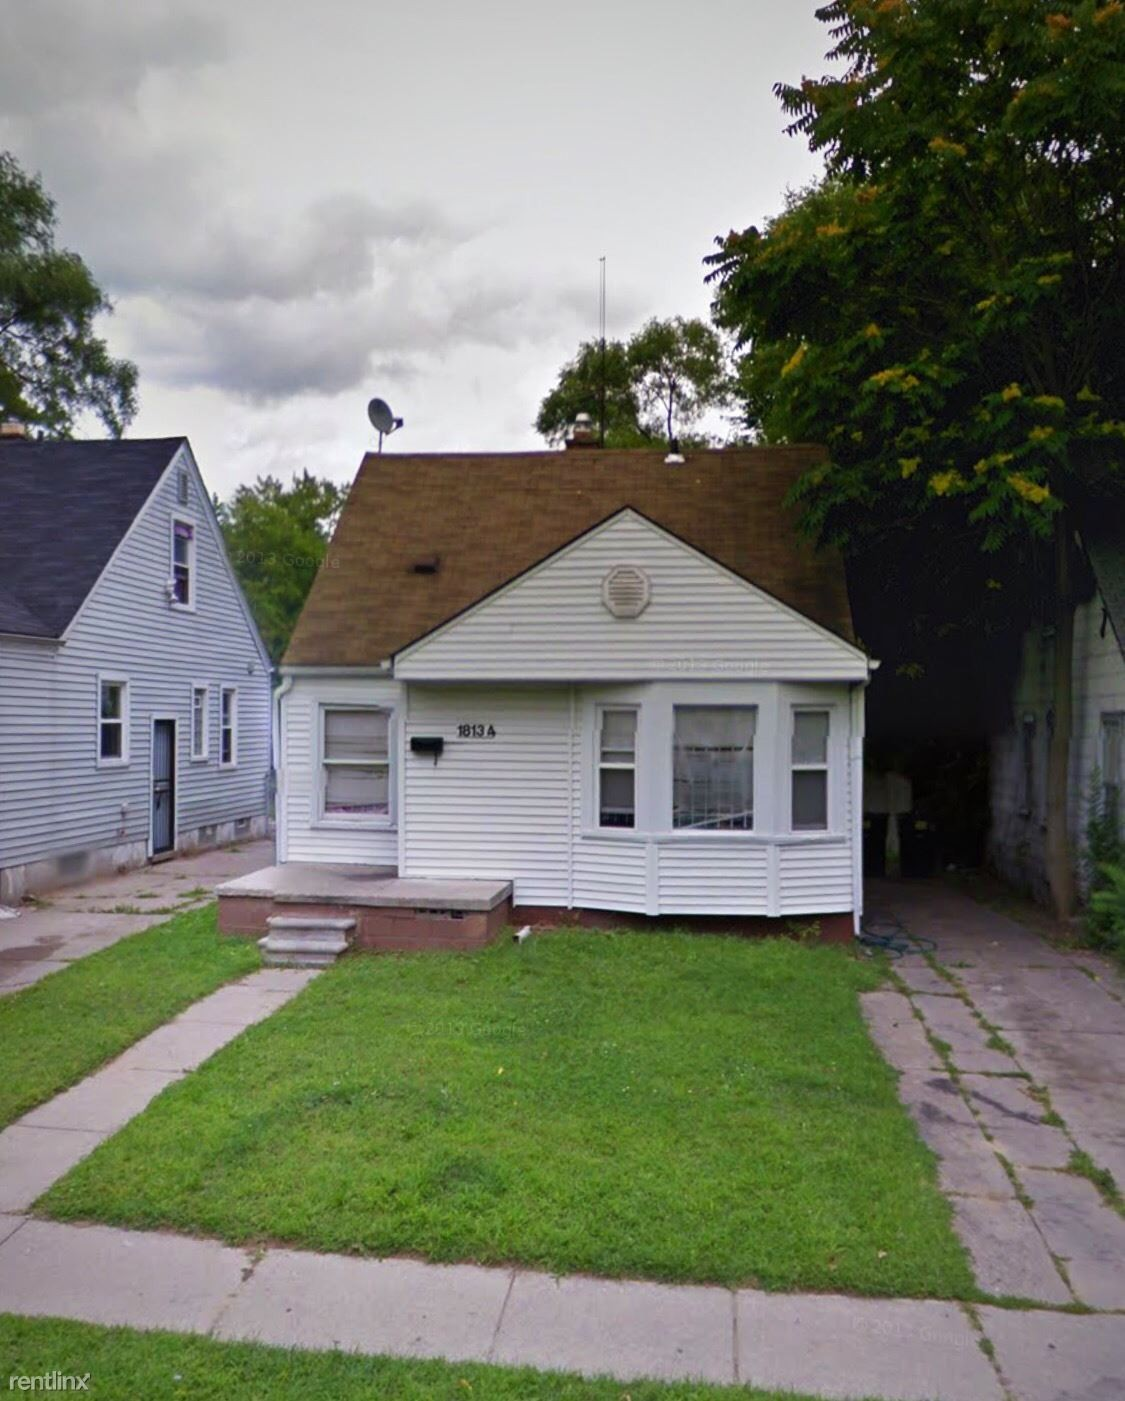 W Seven Mile Rd, Detroit, MI 48219 3 Bedroom House For